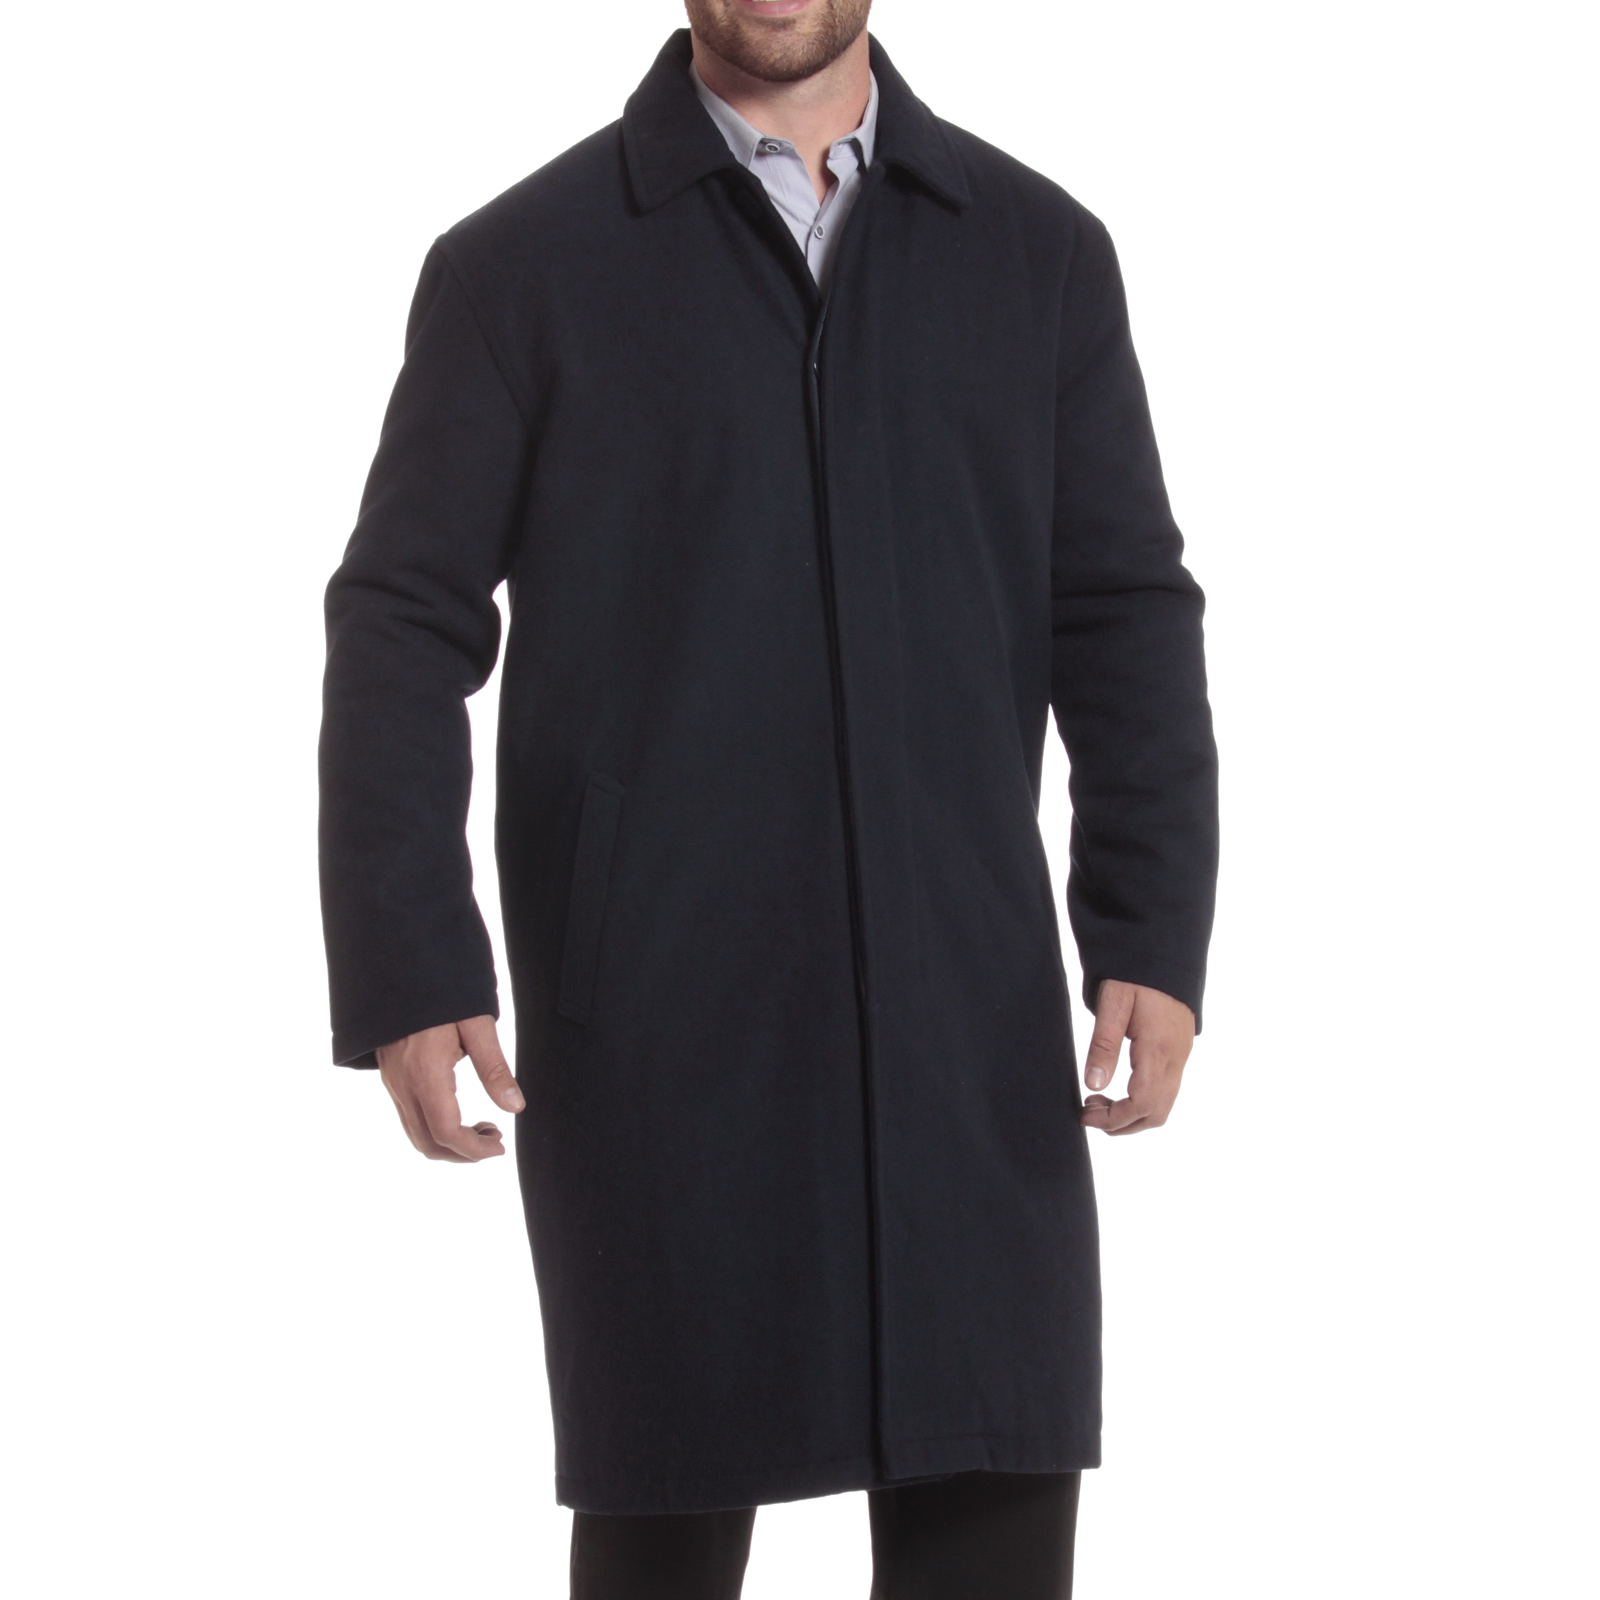 Alpine-Swiss-Mens-Zach-Knee-Length-Jacket-Top-Coat-Trench-Wool-Blend-Overcoat thumbnail 50